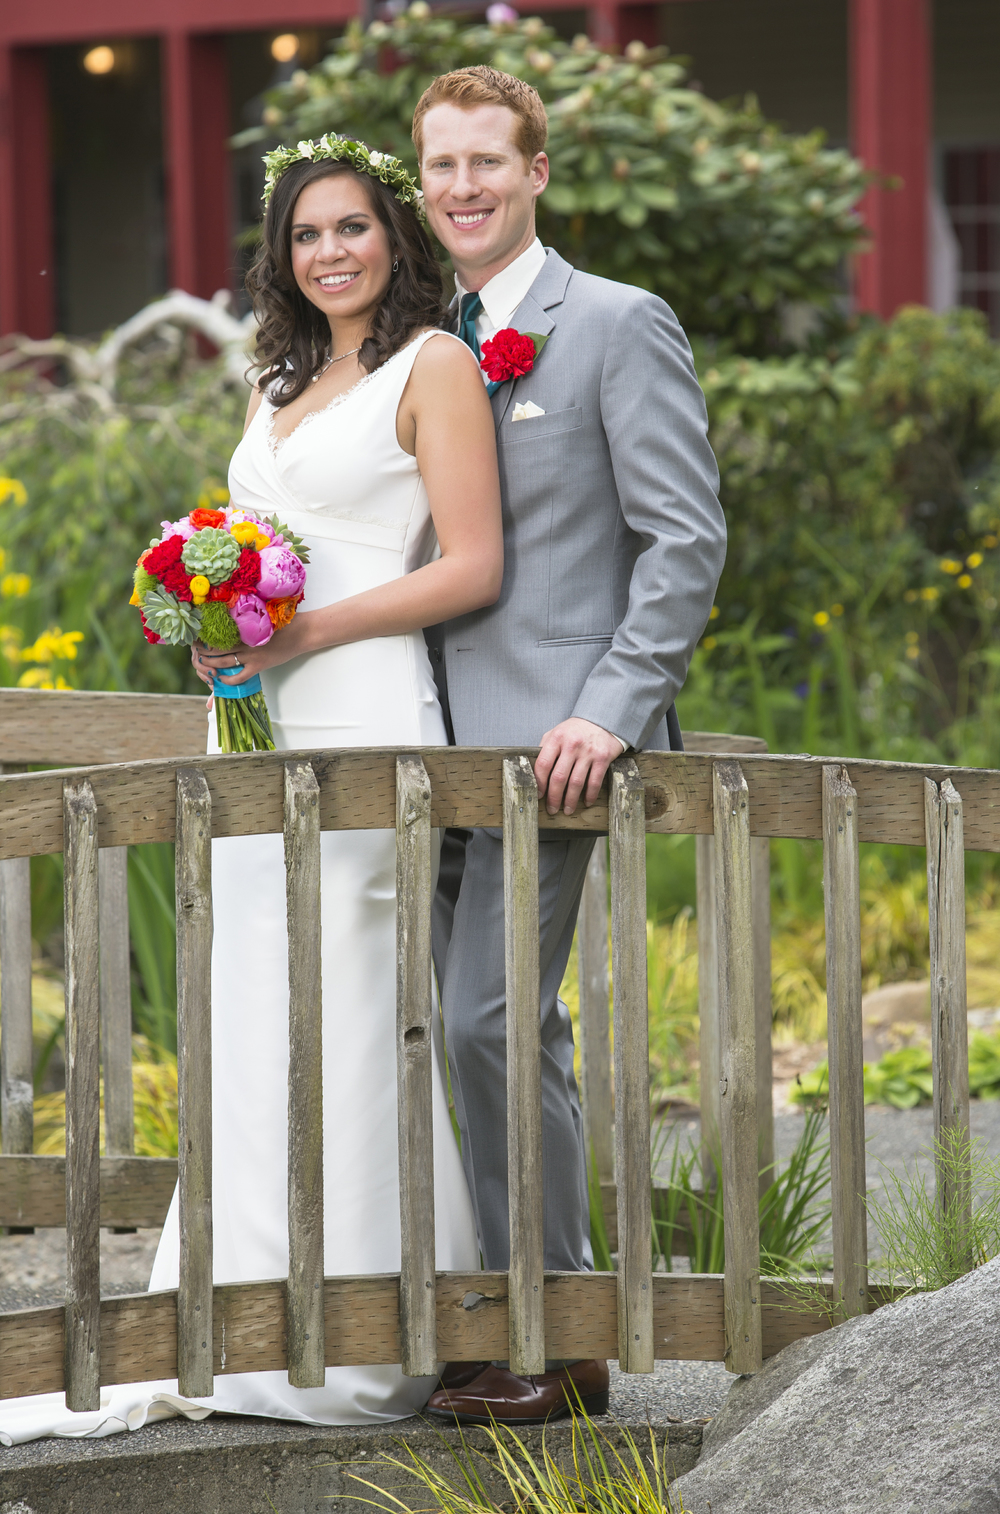 Rosewood Room Wedding in Bothell | Wedding Wise Seattle Planning